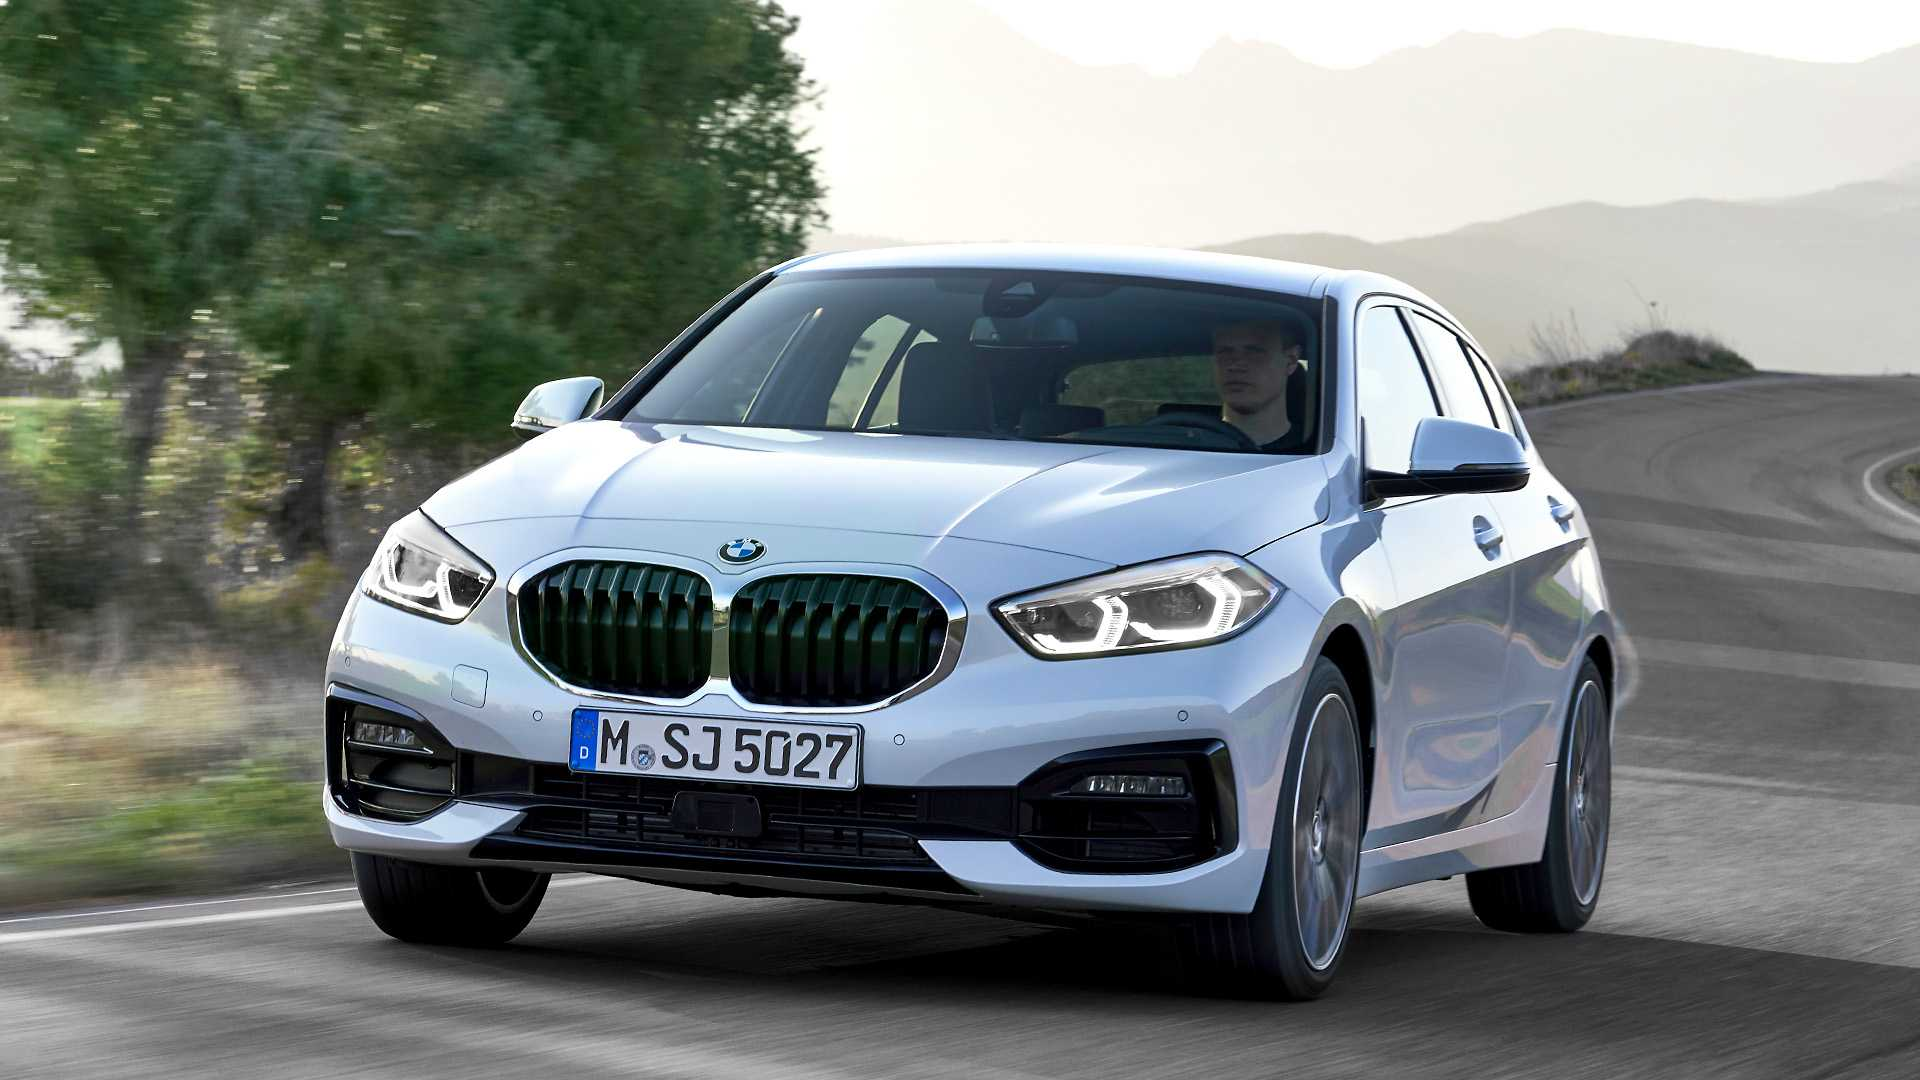 2020 BMW 1-Series 118i (Color: Mineral white Metallic) Front Three-Quarter Wallpapers (3)